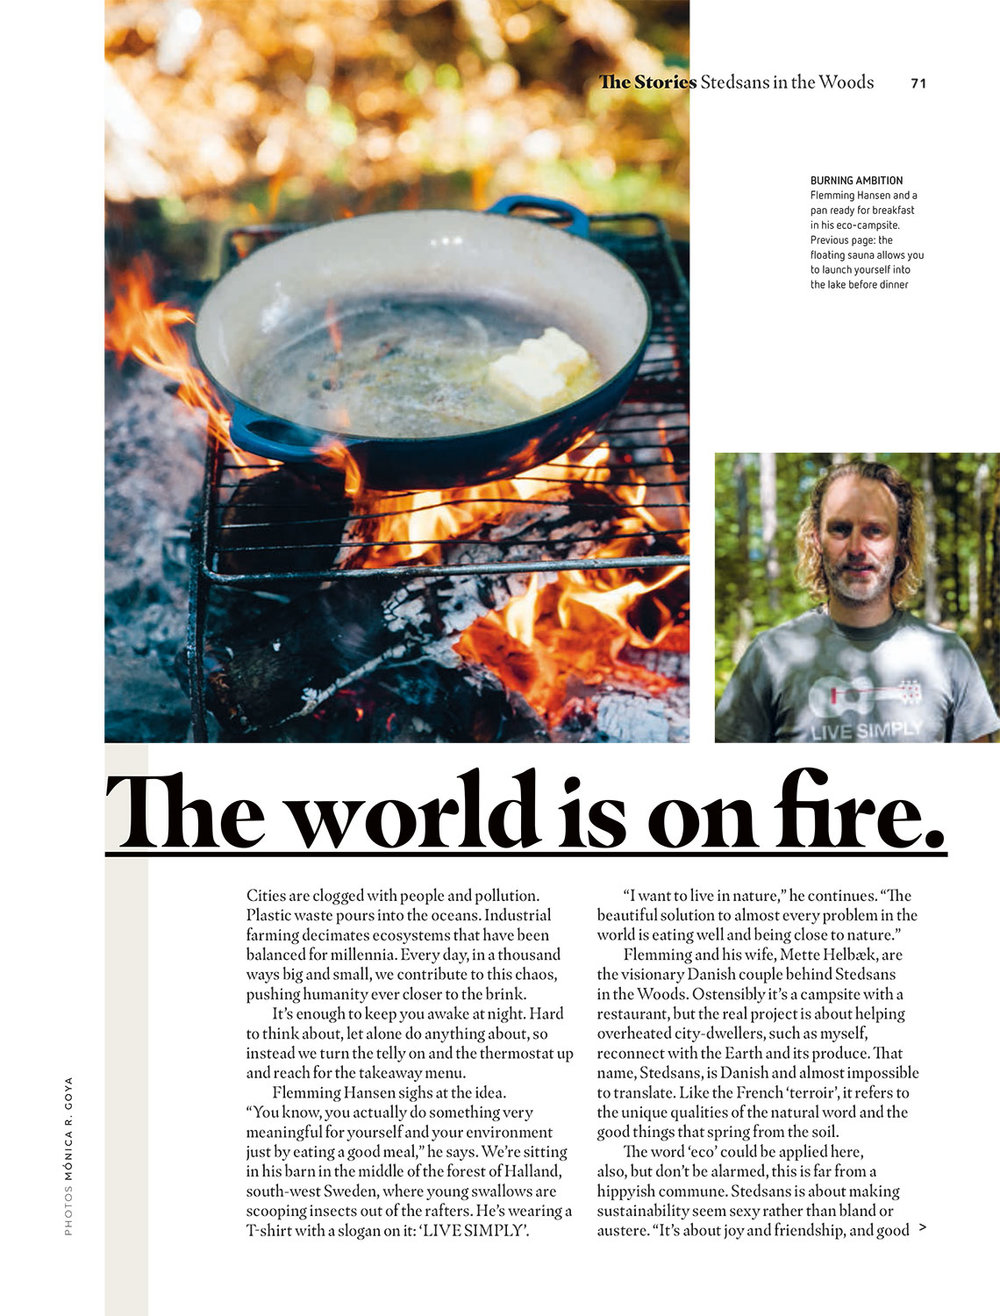 """The World Is On Fire"" - easyJet Traveller October 2018 - photography"